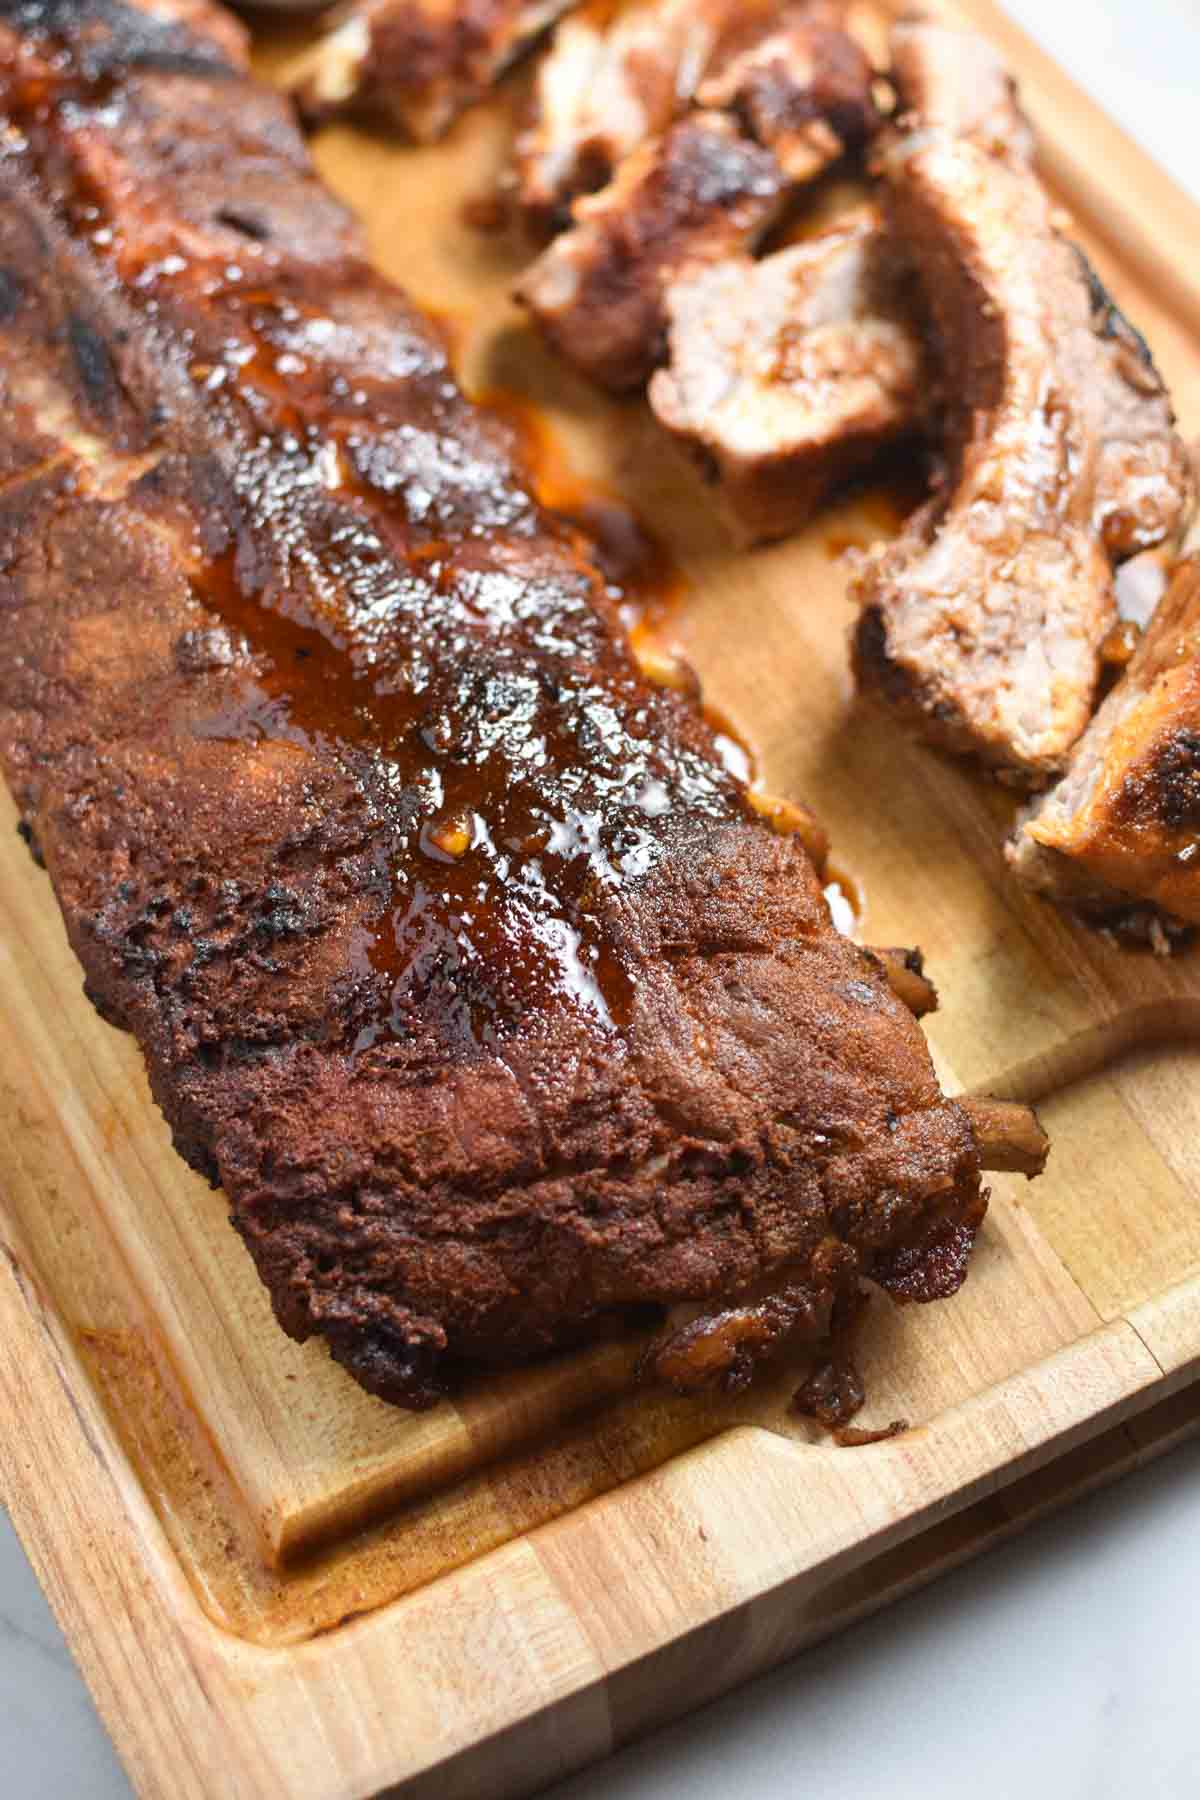 An unsliced rack of ribs with the dry rub and bbq sauce on top